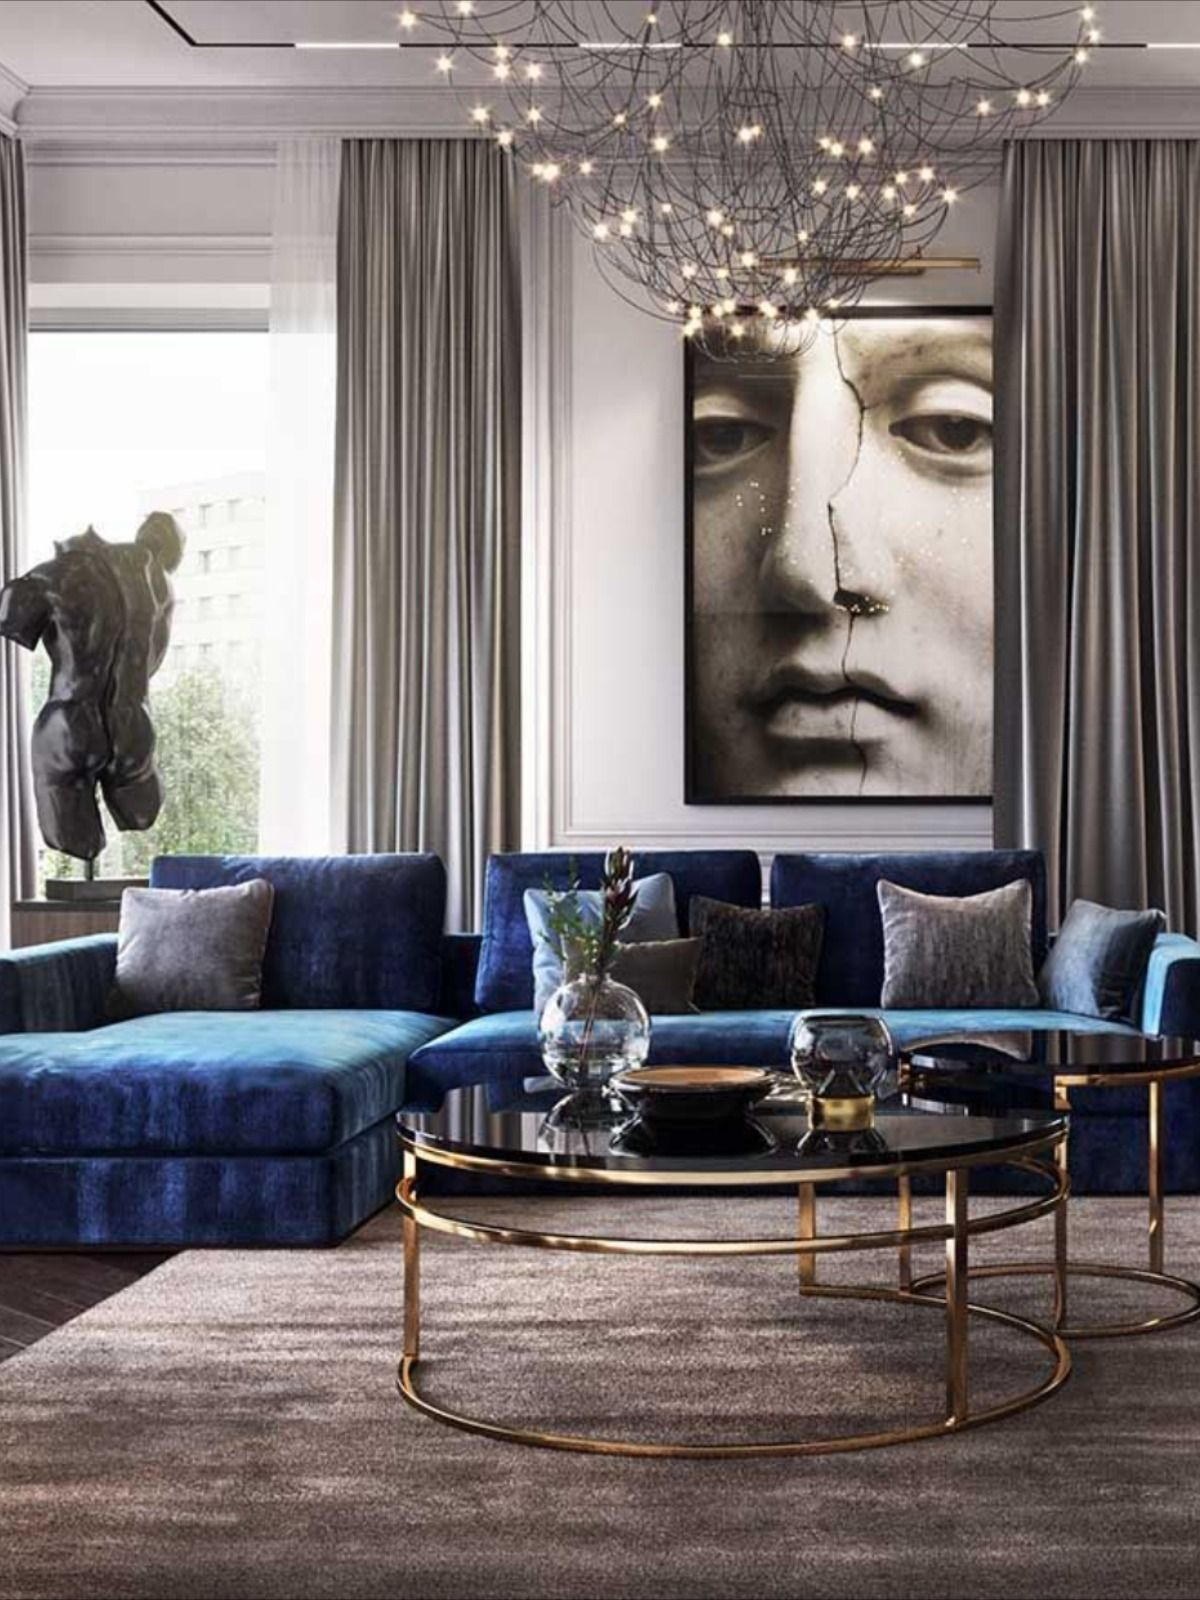 Unraveling A Luxury Living Room In A 15 Million Mansion In Capri Living Room Design Decor Luxury Living Room Home Room Design Og double d living luxury